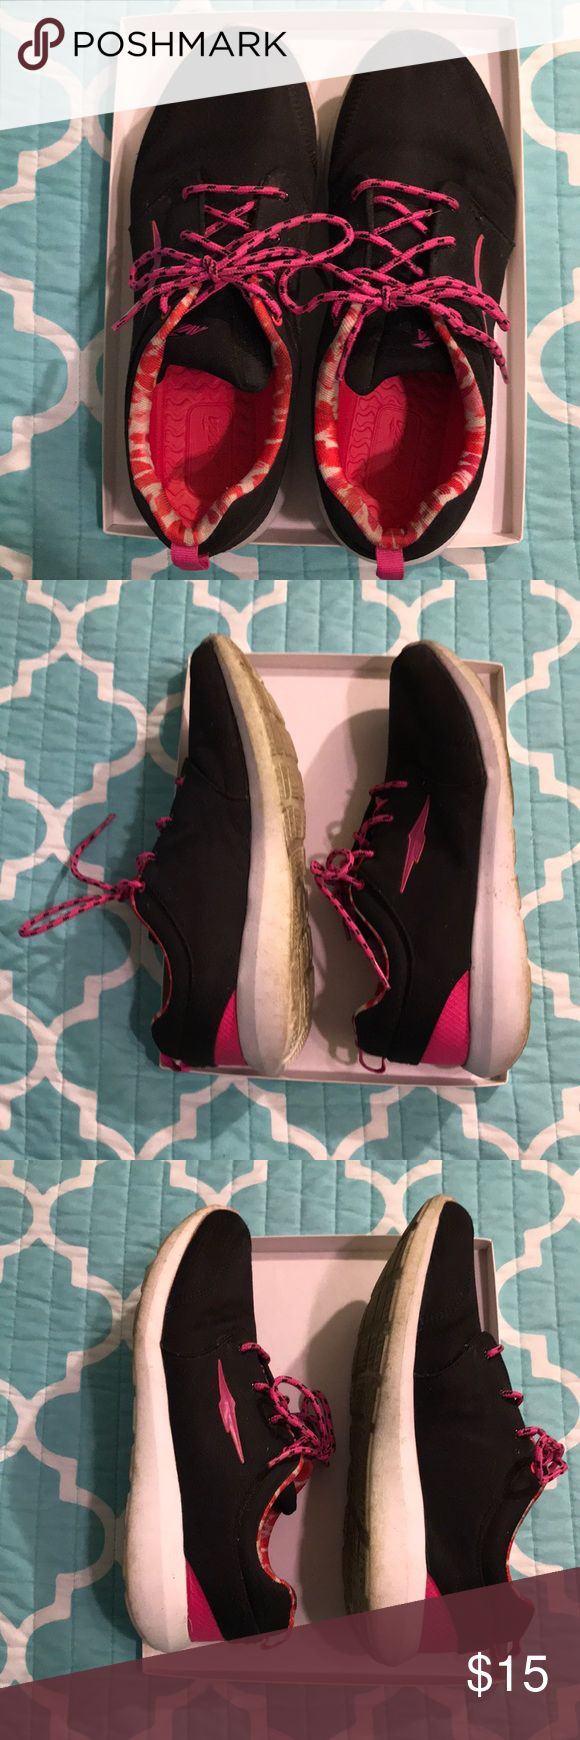 Avia Sneakers 💕💕💕 Good Condition. Make an Offer! Avia Shoes Sneakers